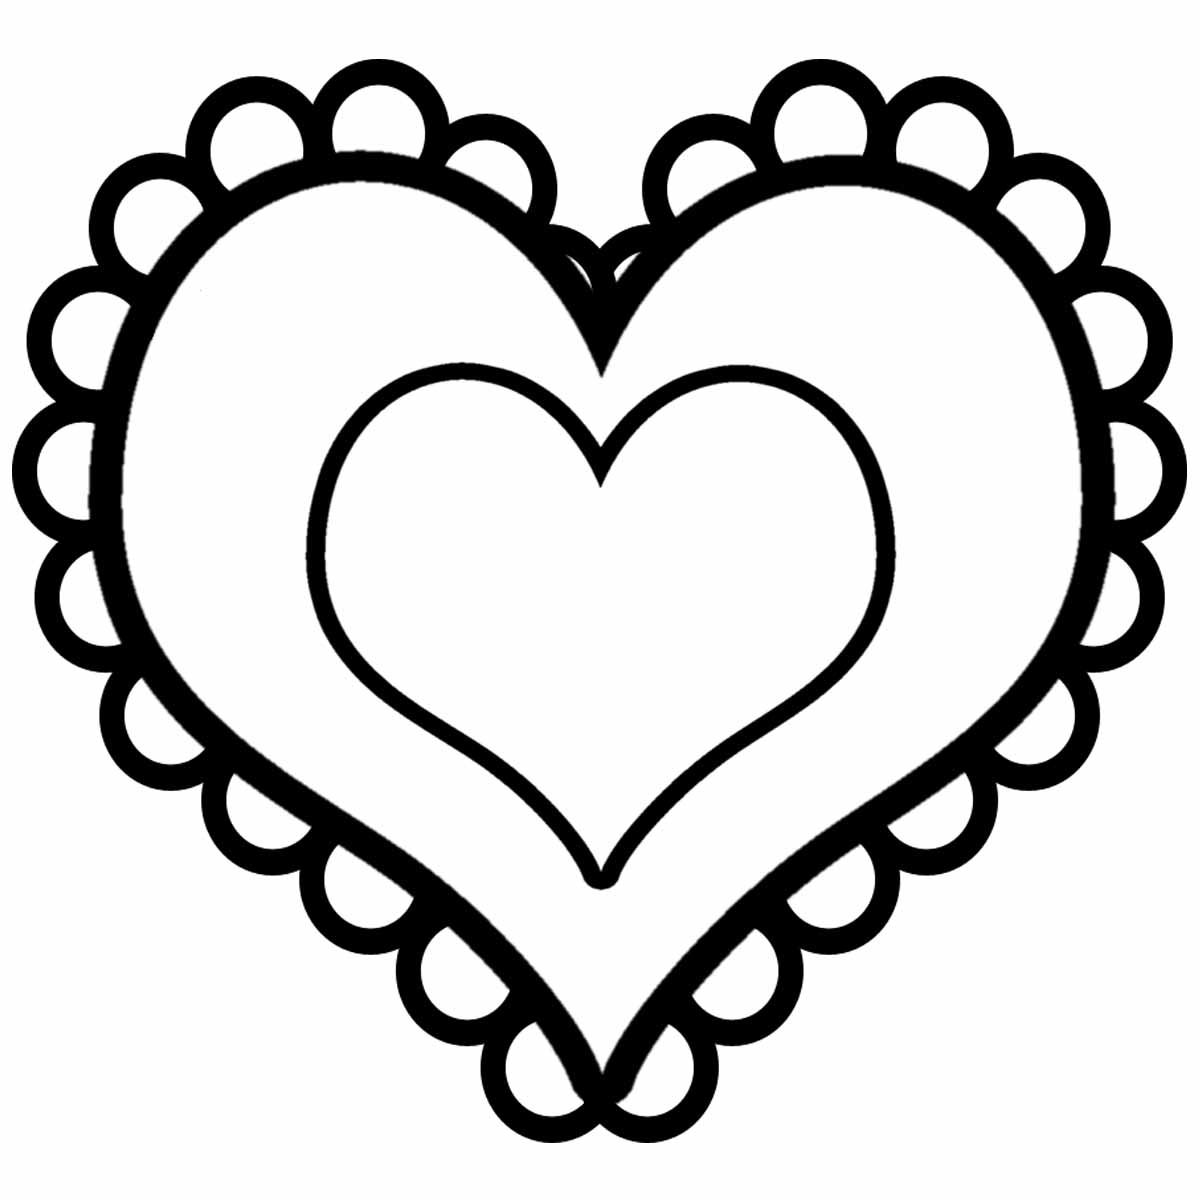 free printable heart coloring pages for kids free printable heart coloring pages for kids printable for heart free kids coloring pages